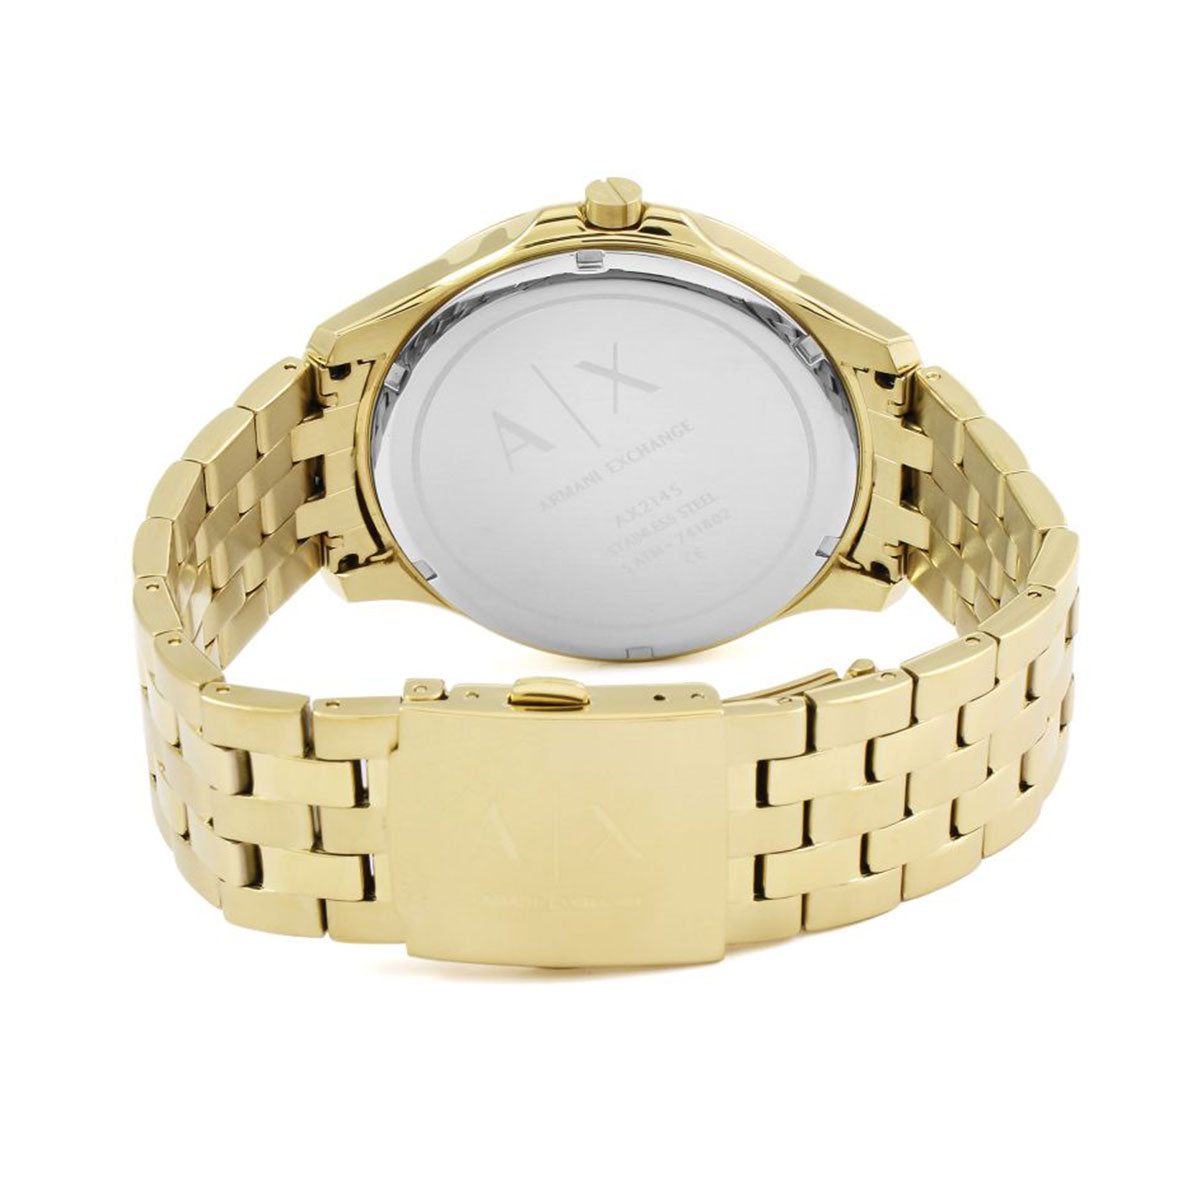 Armani Exchange AX2145 Mens Watch